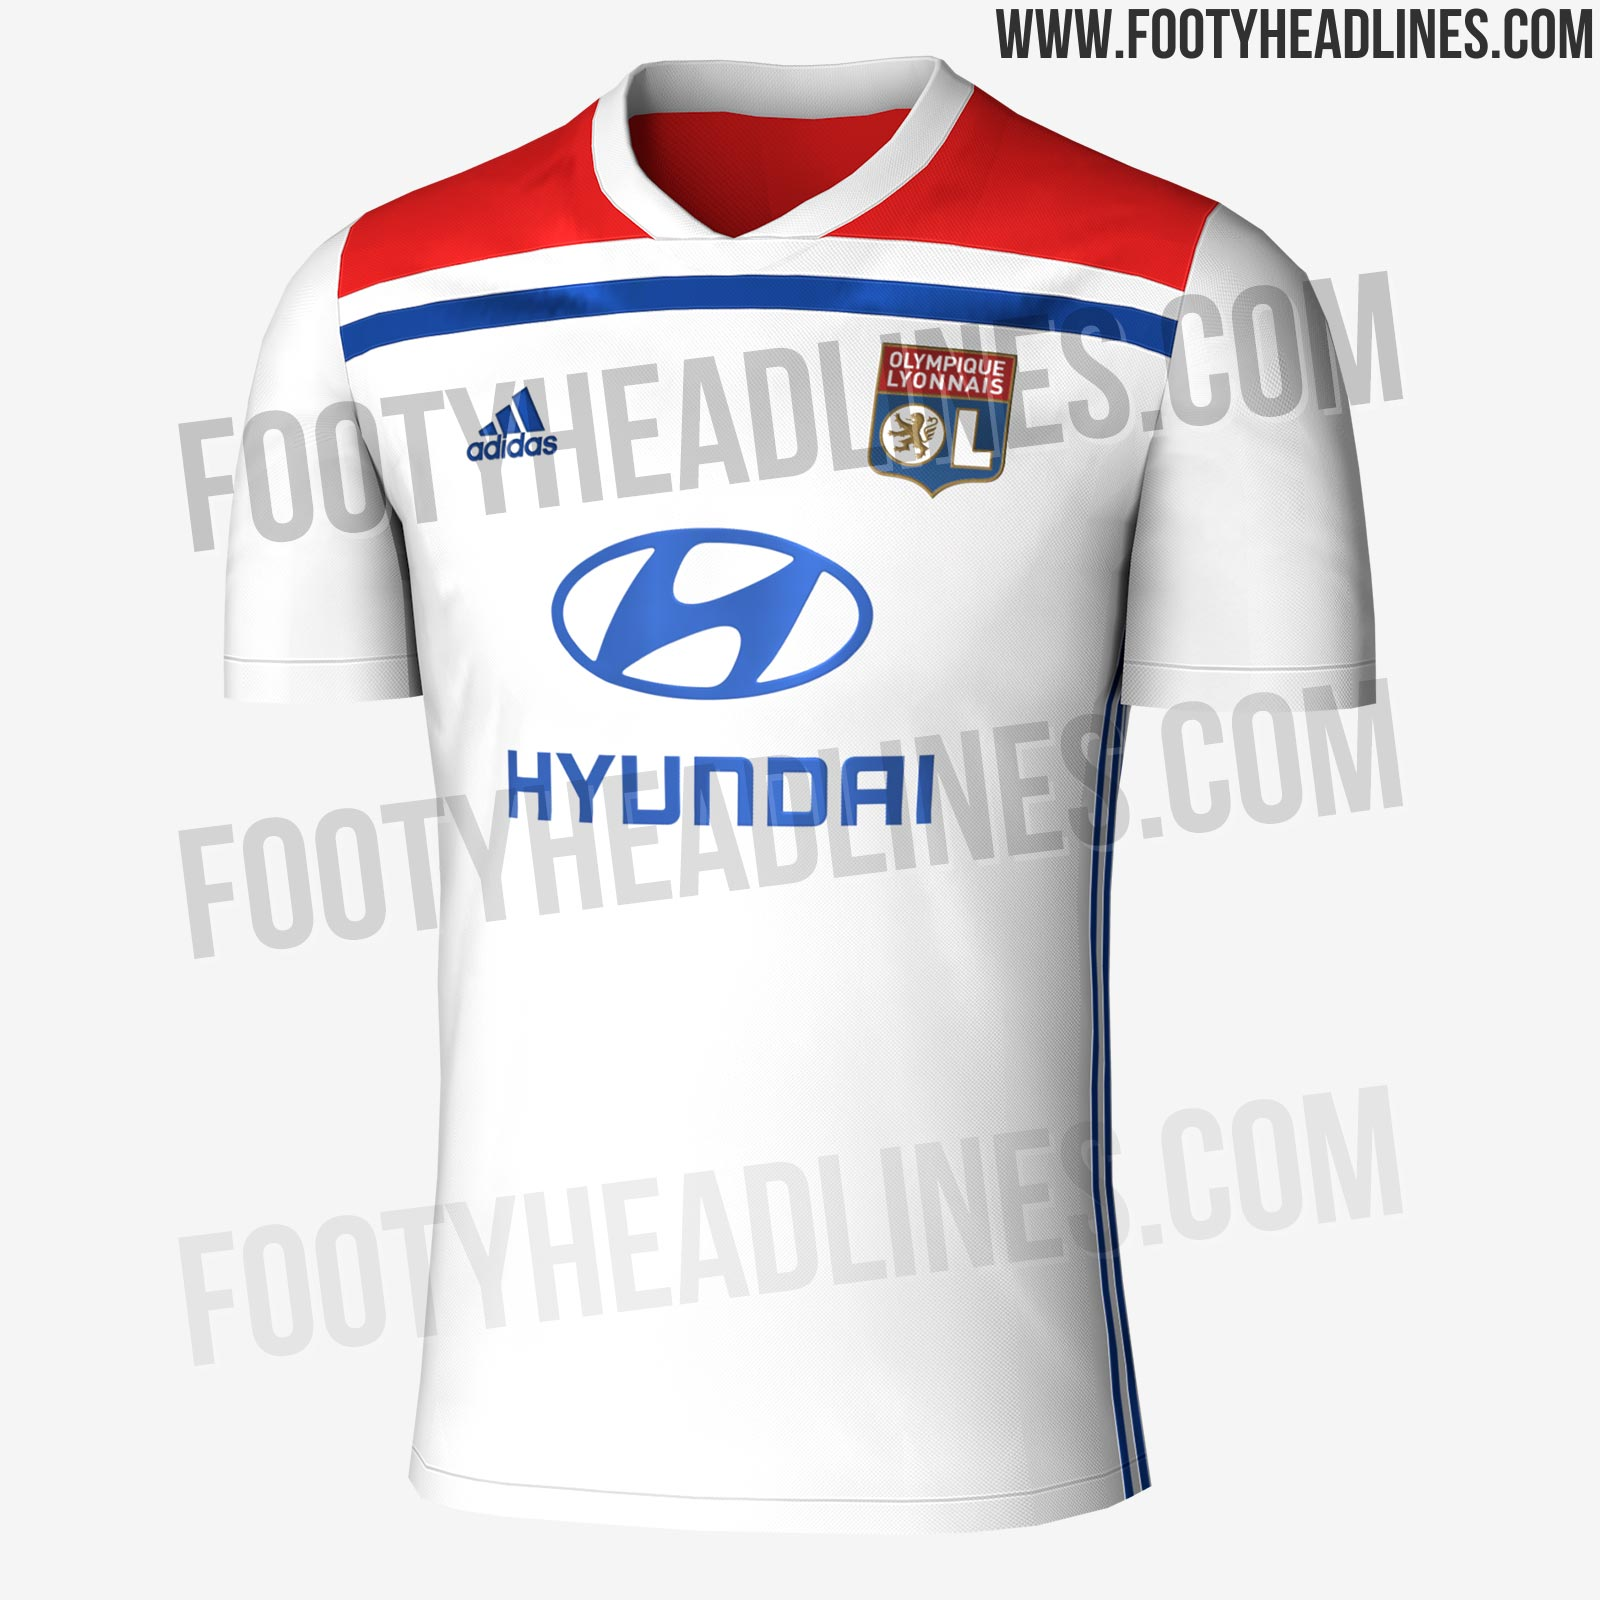 Olympique Lyon 18-19 Home   Away Kit Leaked  a55409bbc